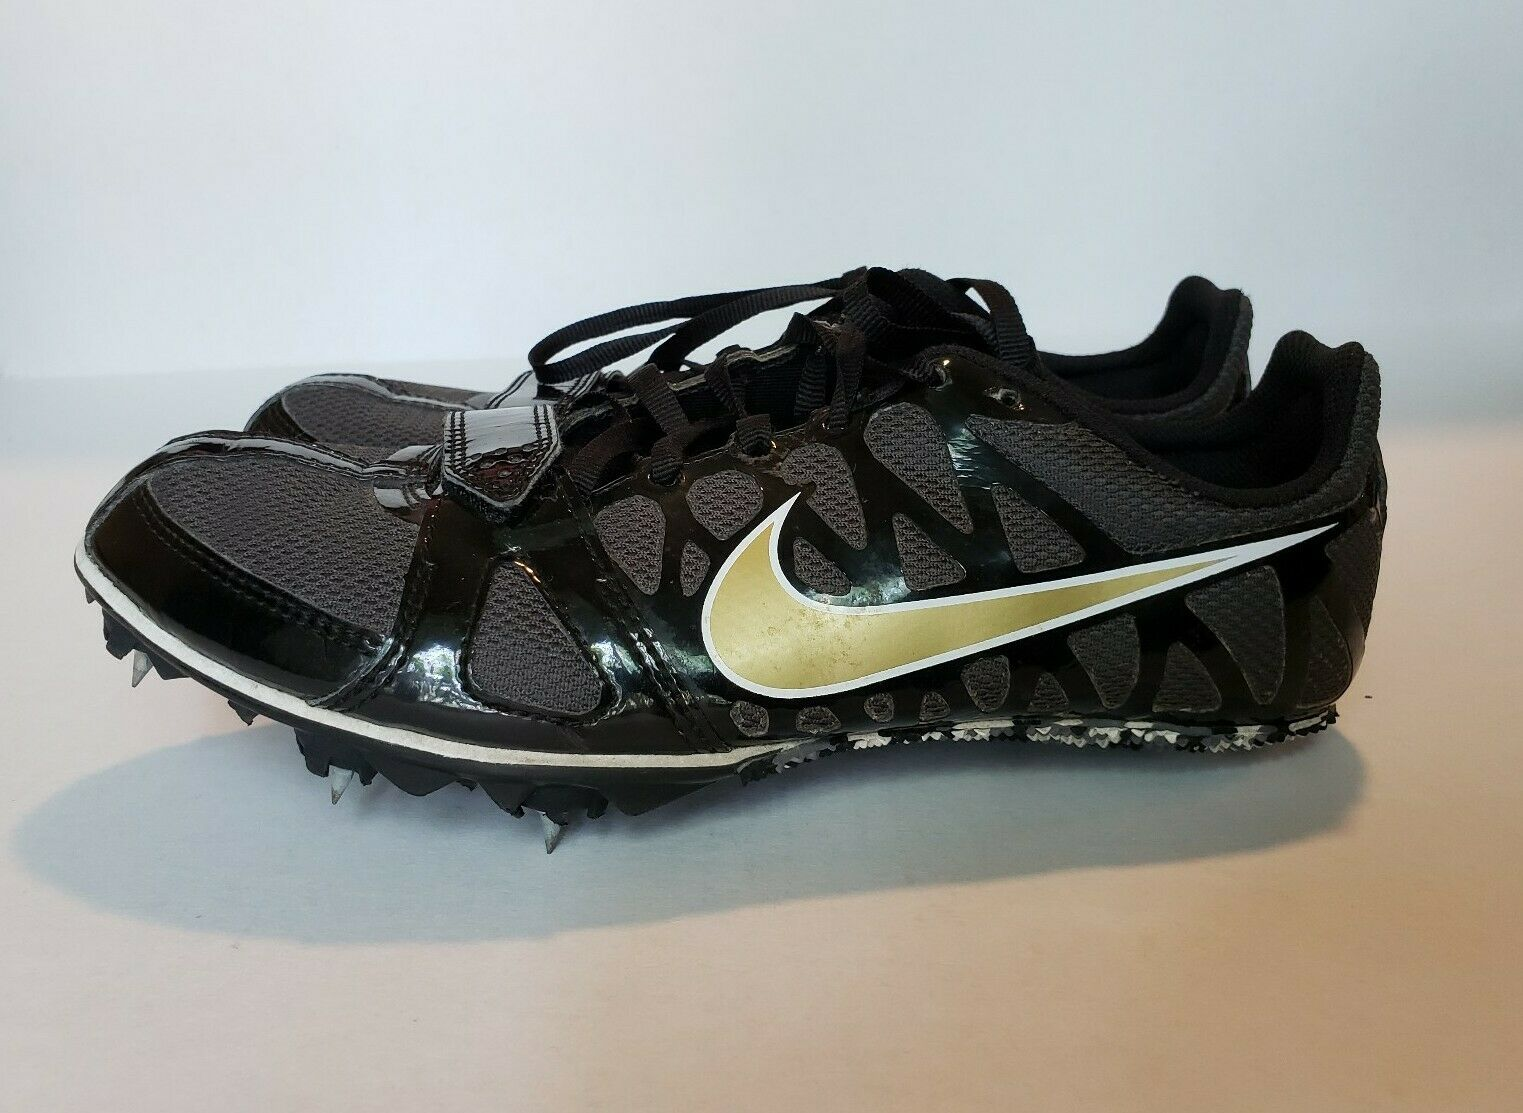 Nike Zoom Rival S Sprint Spikes Shoes